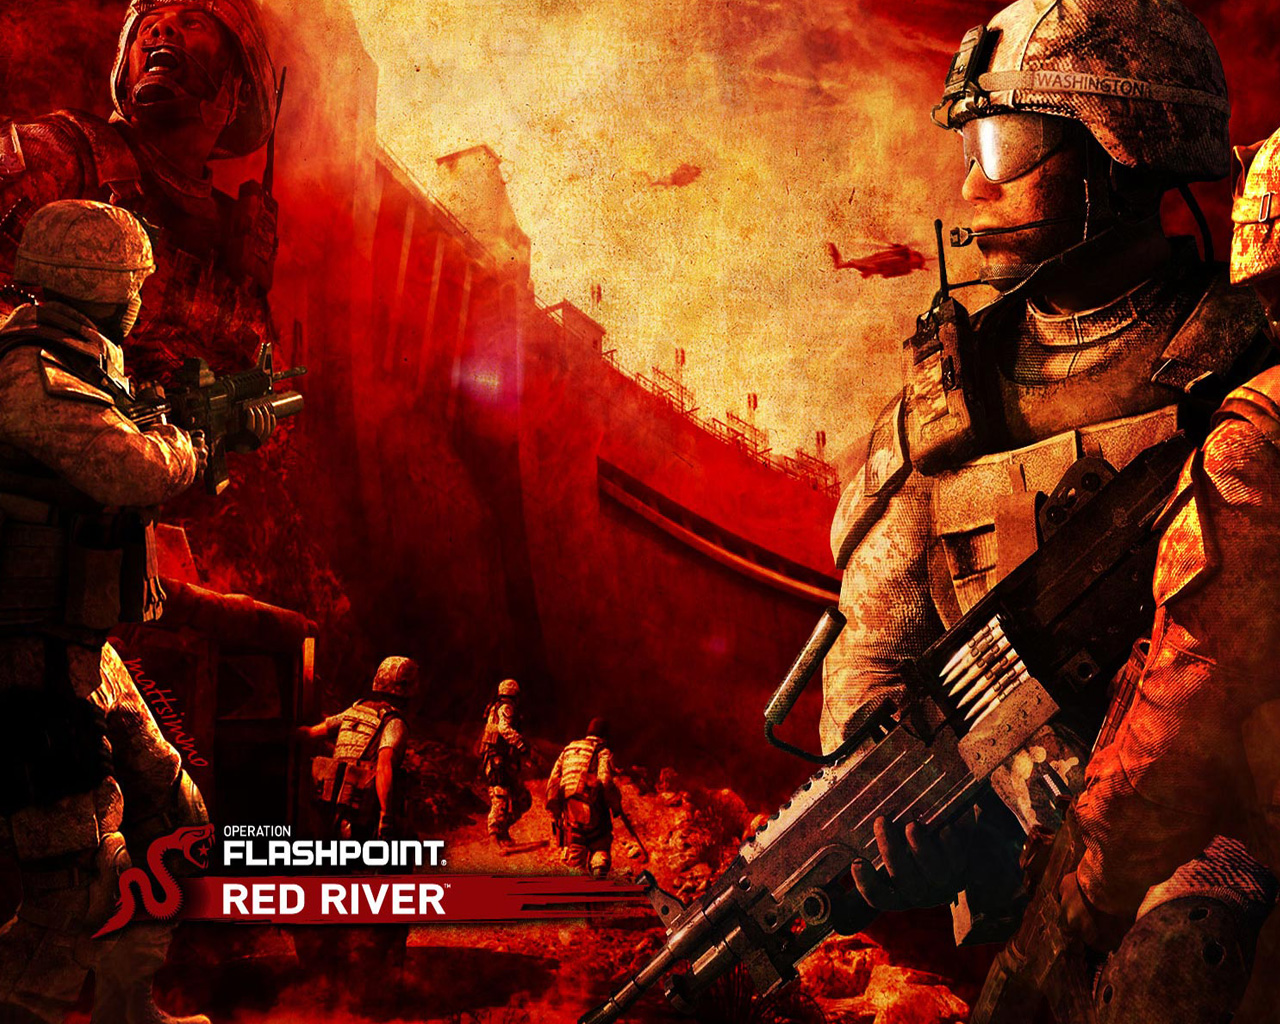 Operation Flashpoint: Red River Wallpaper in 1280x1024